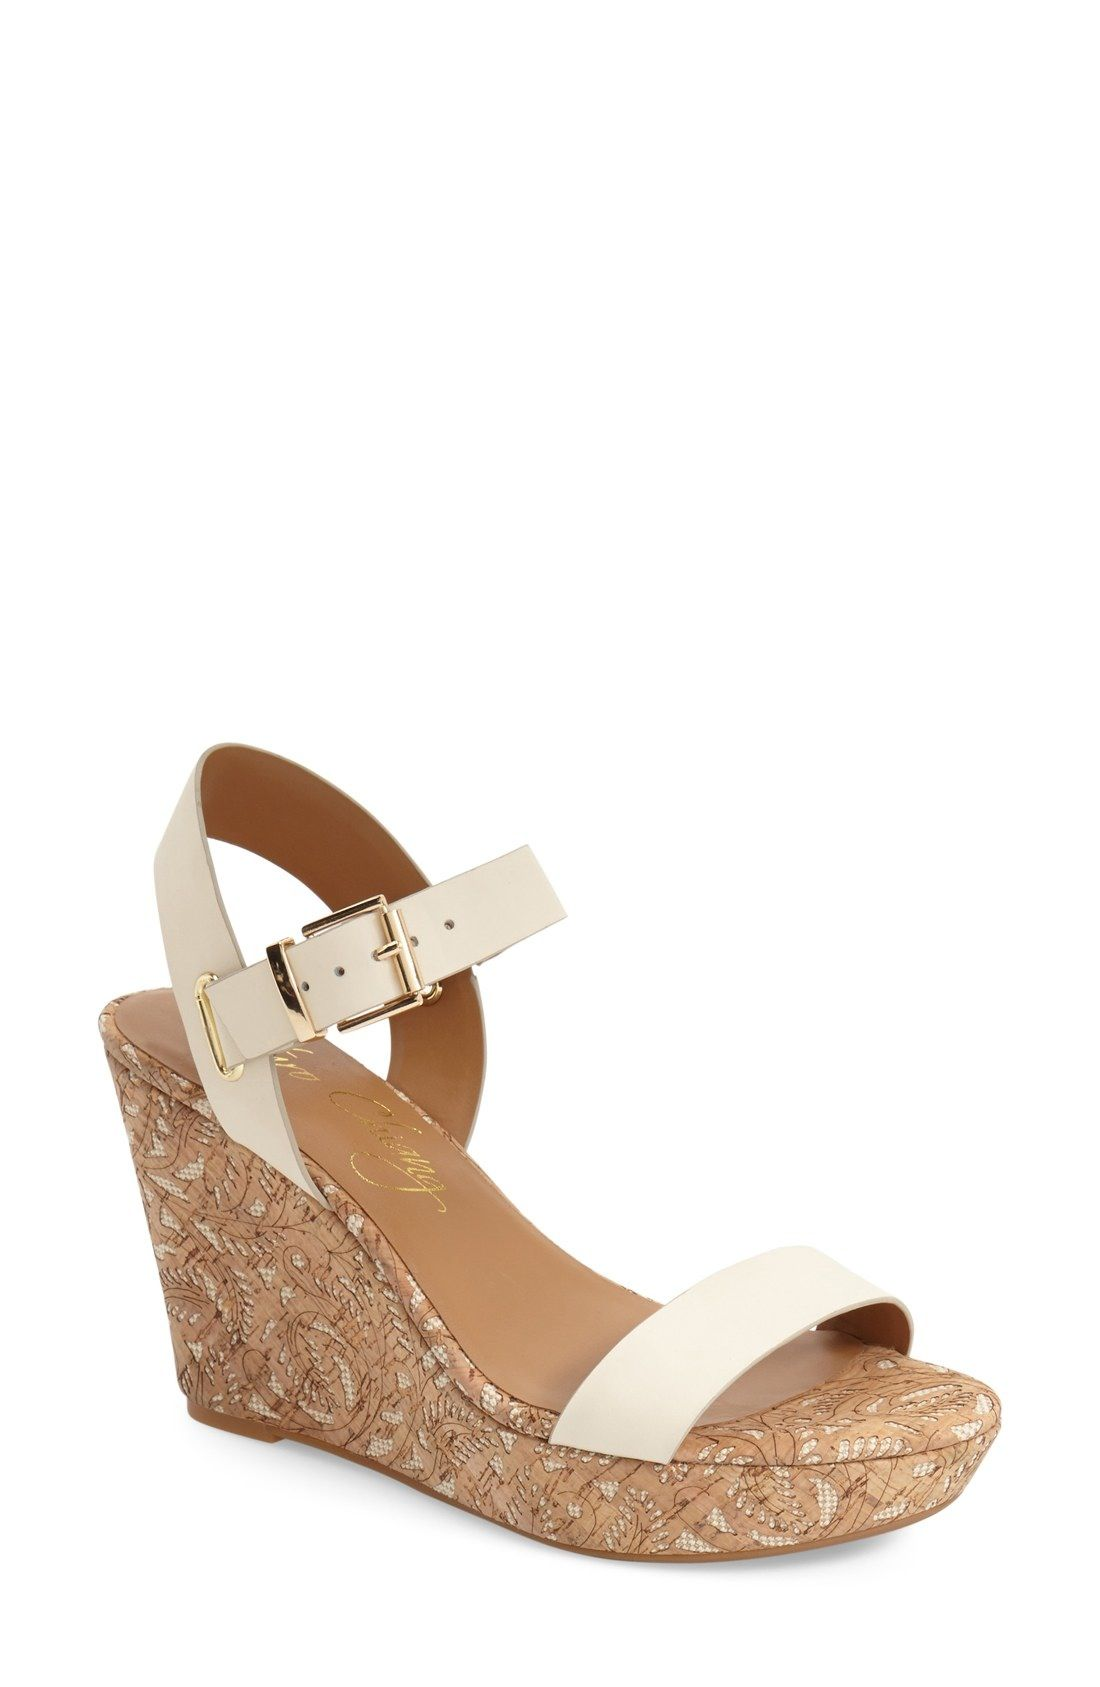 0ee8f7716bd7 Arturo Chiang  Paulline  Wedge Sandal (Women) available at  Nordstrom